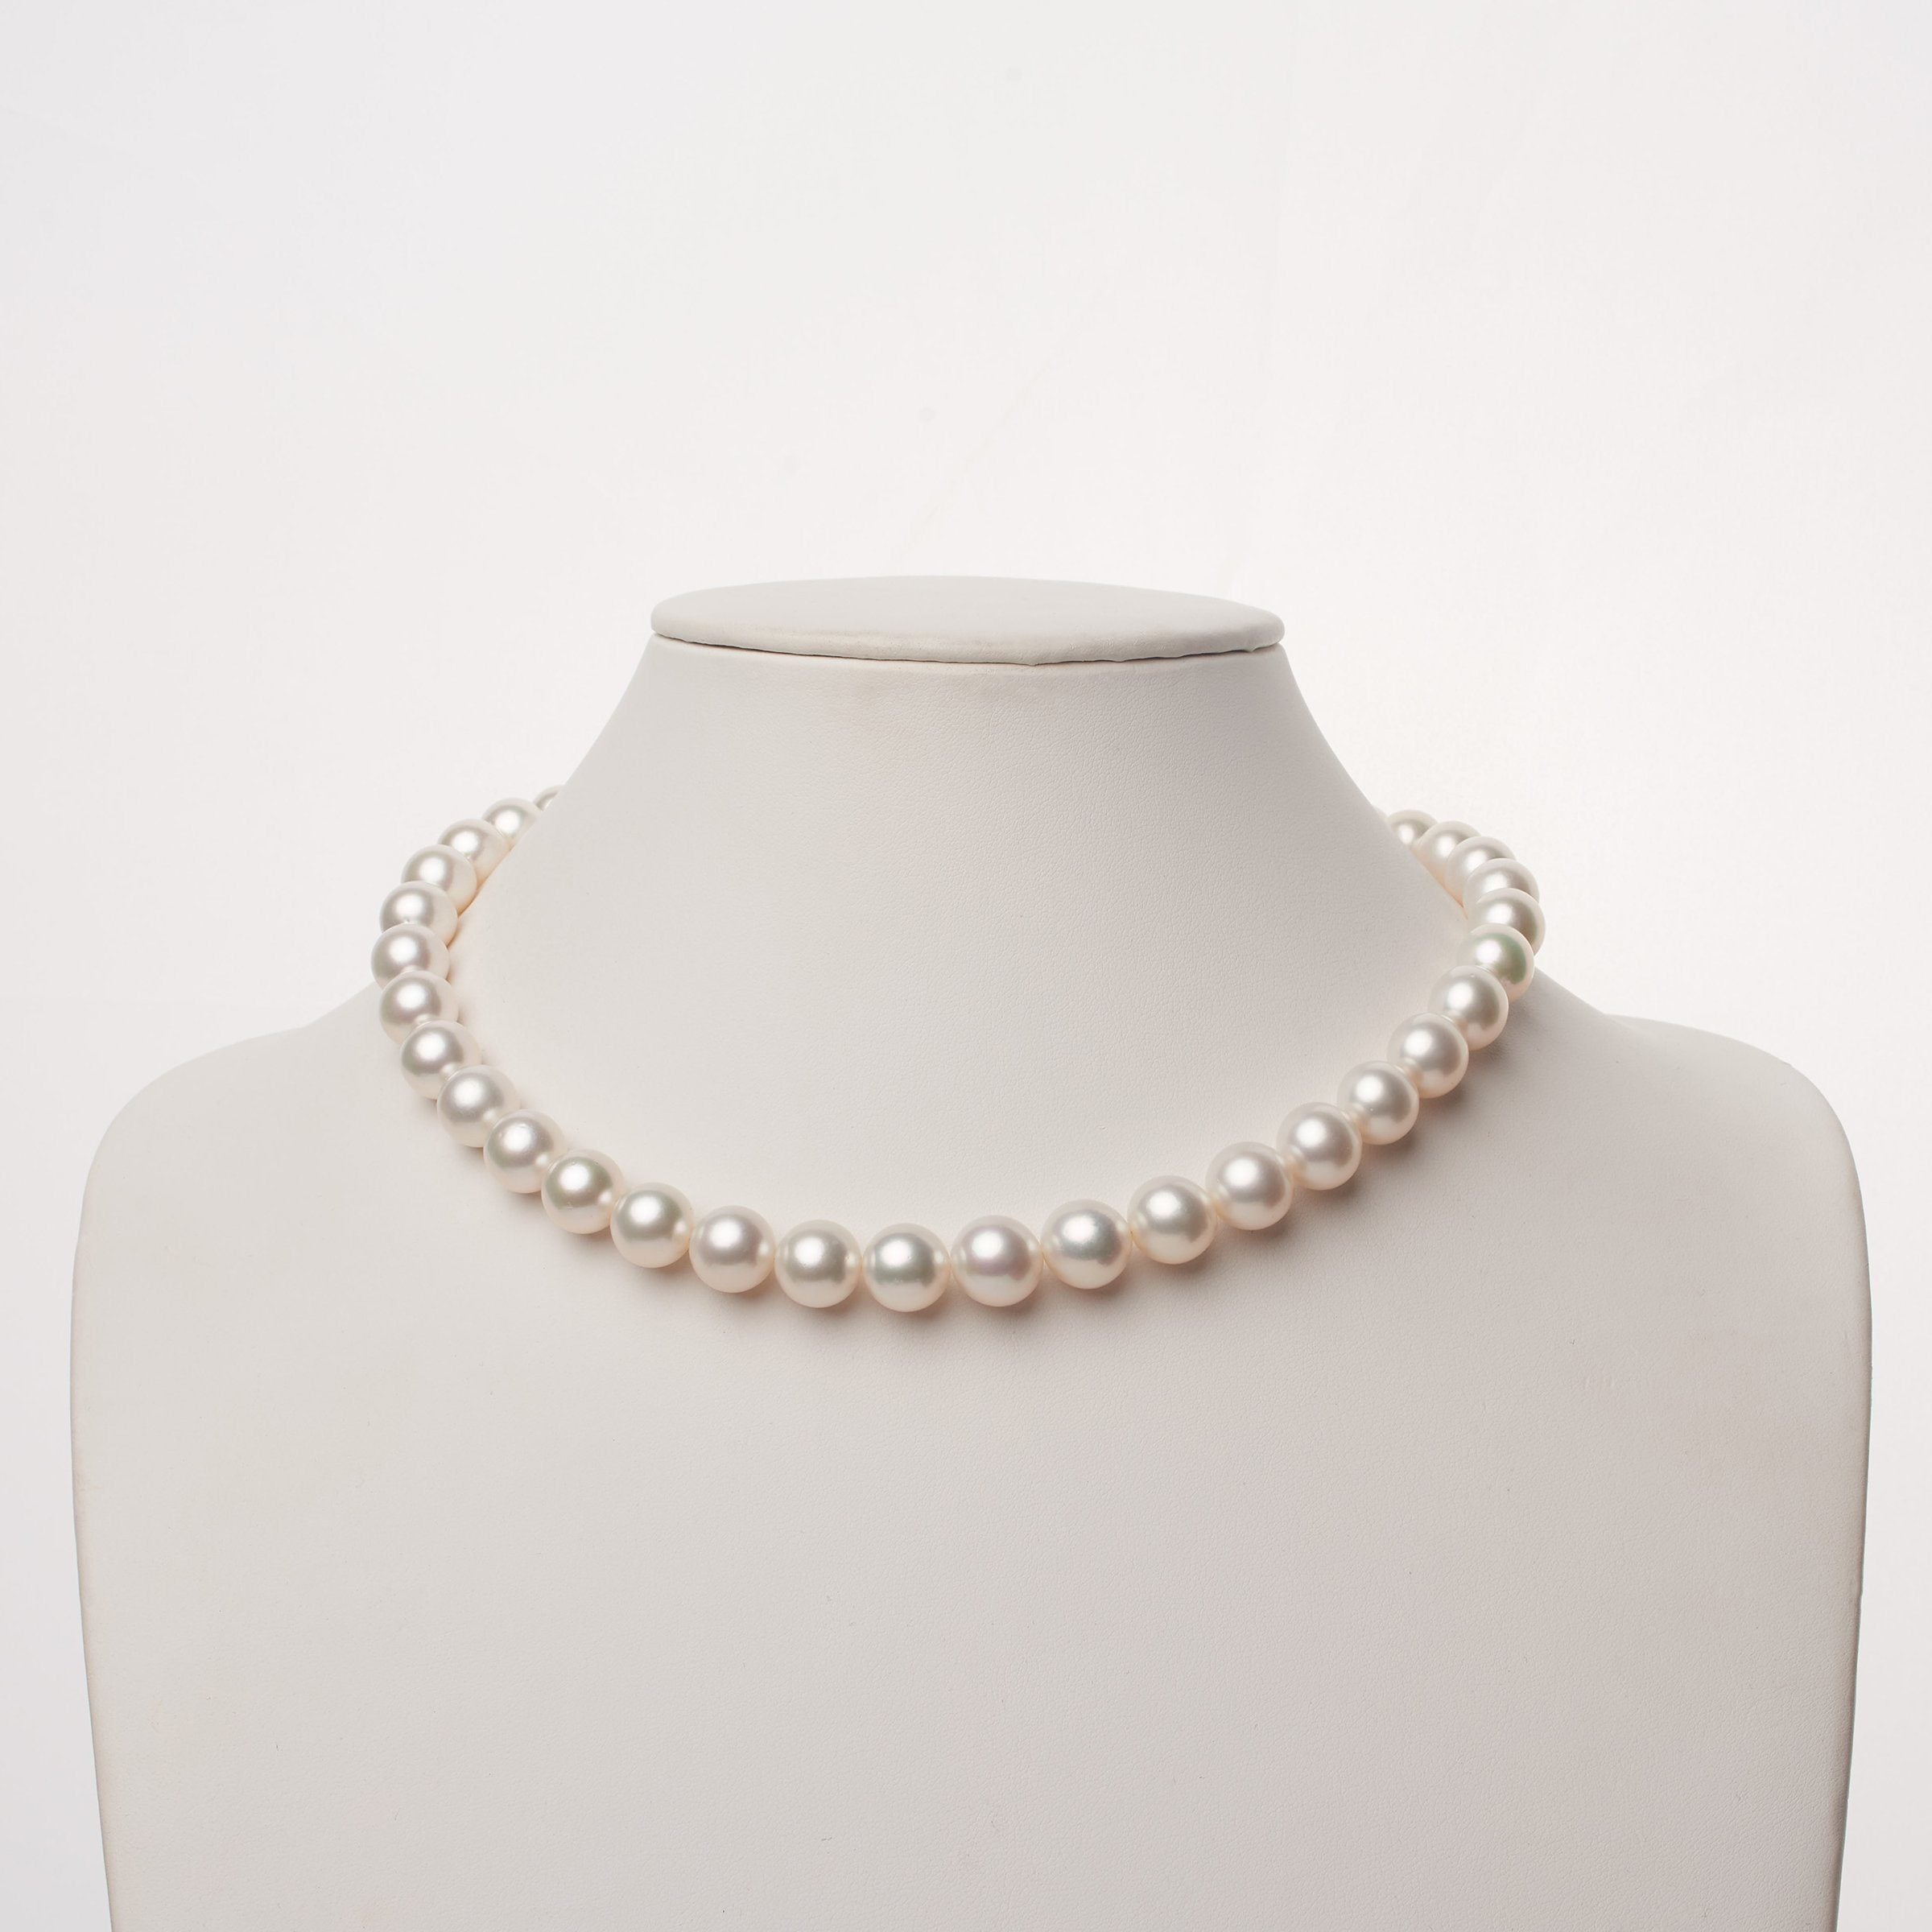 10.1-11.8 mm AA+/AAA White South Sea Round Pearl Necklace